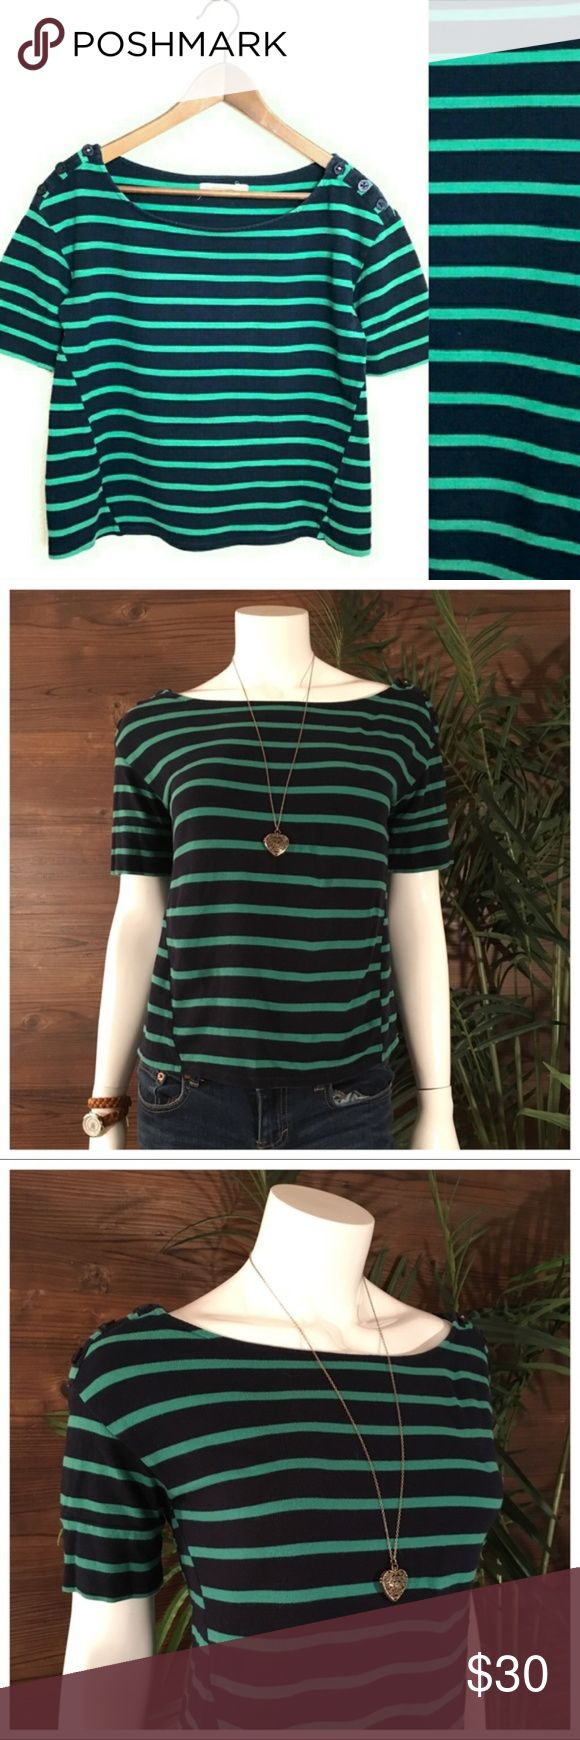 Anthropologie Pilcro Green Navy Striped Top L Pilcro & The Letterpress Nautical/preppy style cotton crop top Women's Size L 100% cotton piqué/marcella Navy sleeves that fold to just above the elbow Button detail at shoulder Excellent gently used condition Anthropologie Tops Crop Tops